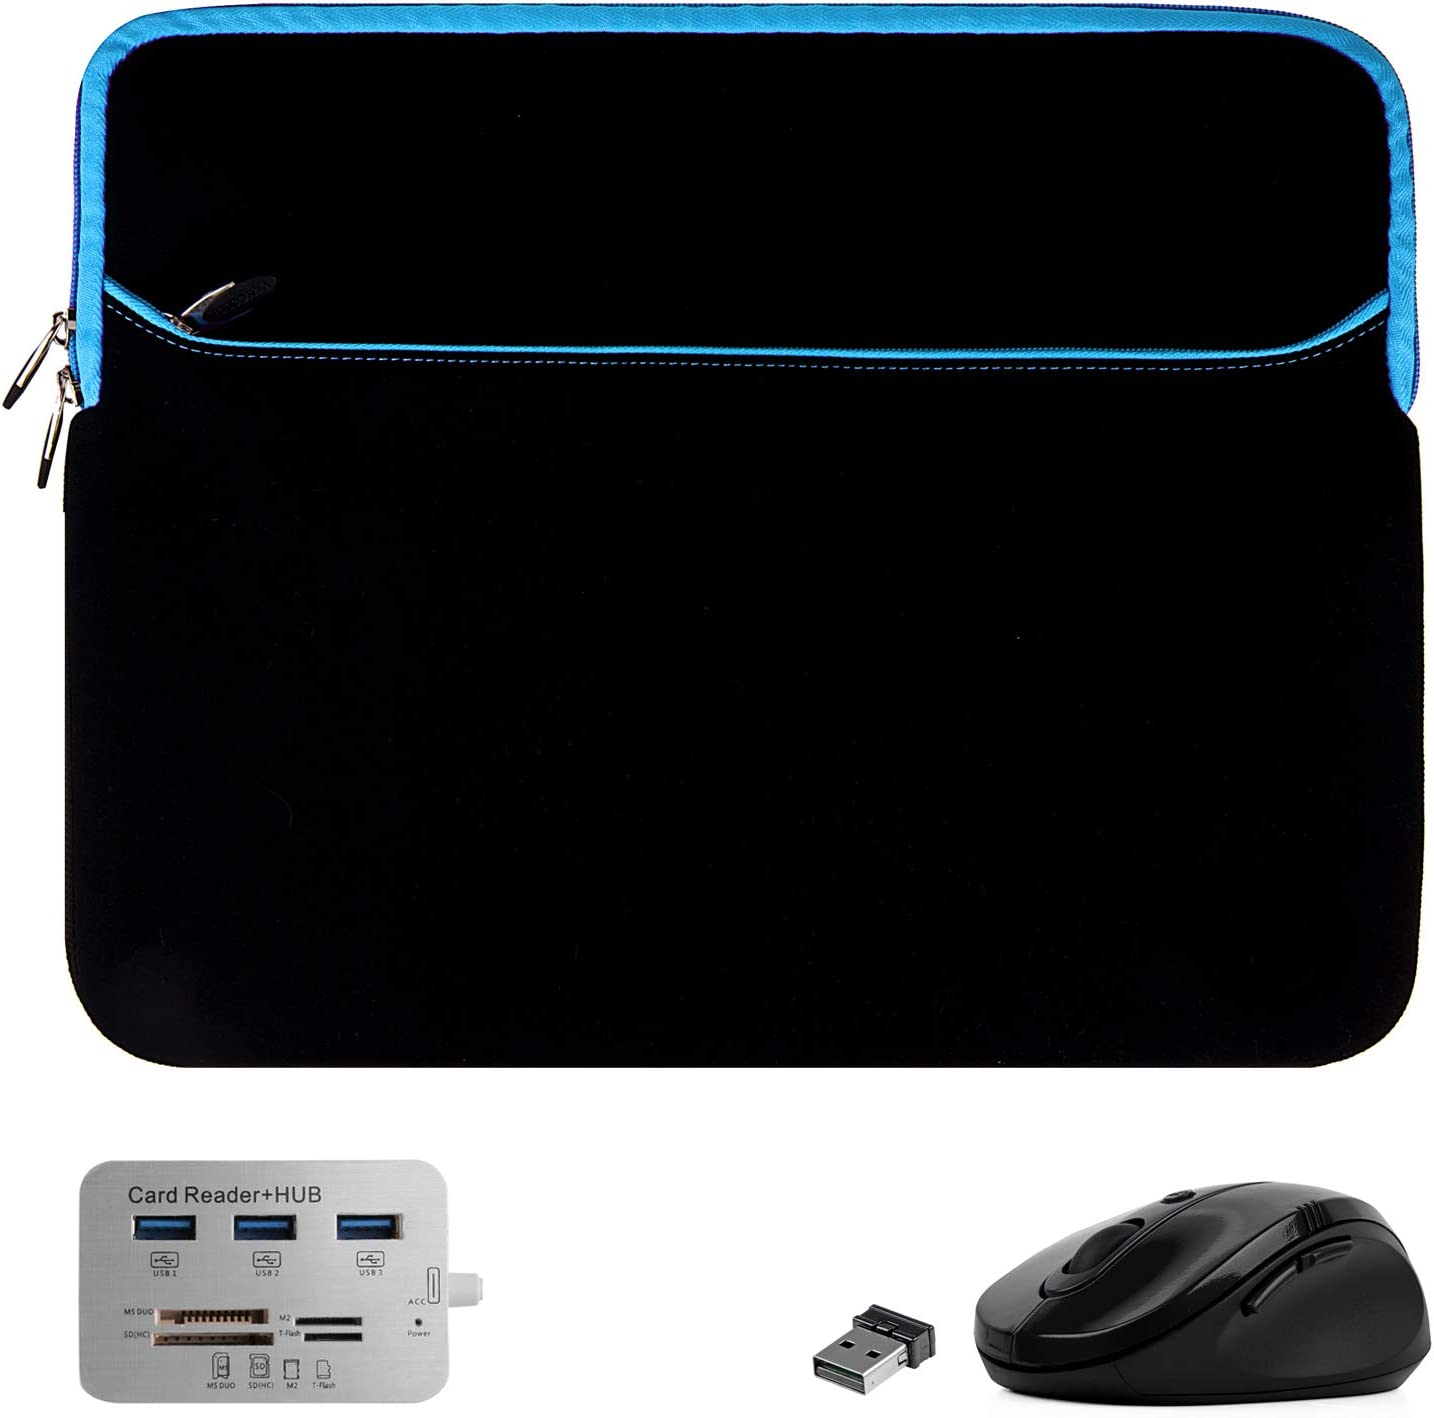 Protective Laptop Sleeve Blue 15.6 15 inch for Dell G3 3590 3579, Inspiron 15 7590 5582 3585 7586 7580, Latitude 15 5500 5501 3500, Precision 15 3540, Vostro 15 3584 7590 (Includes USB C Hub, Mouse)